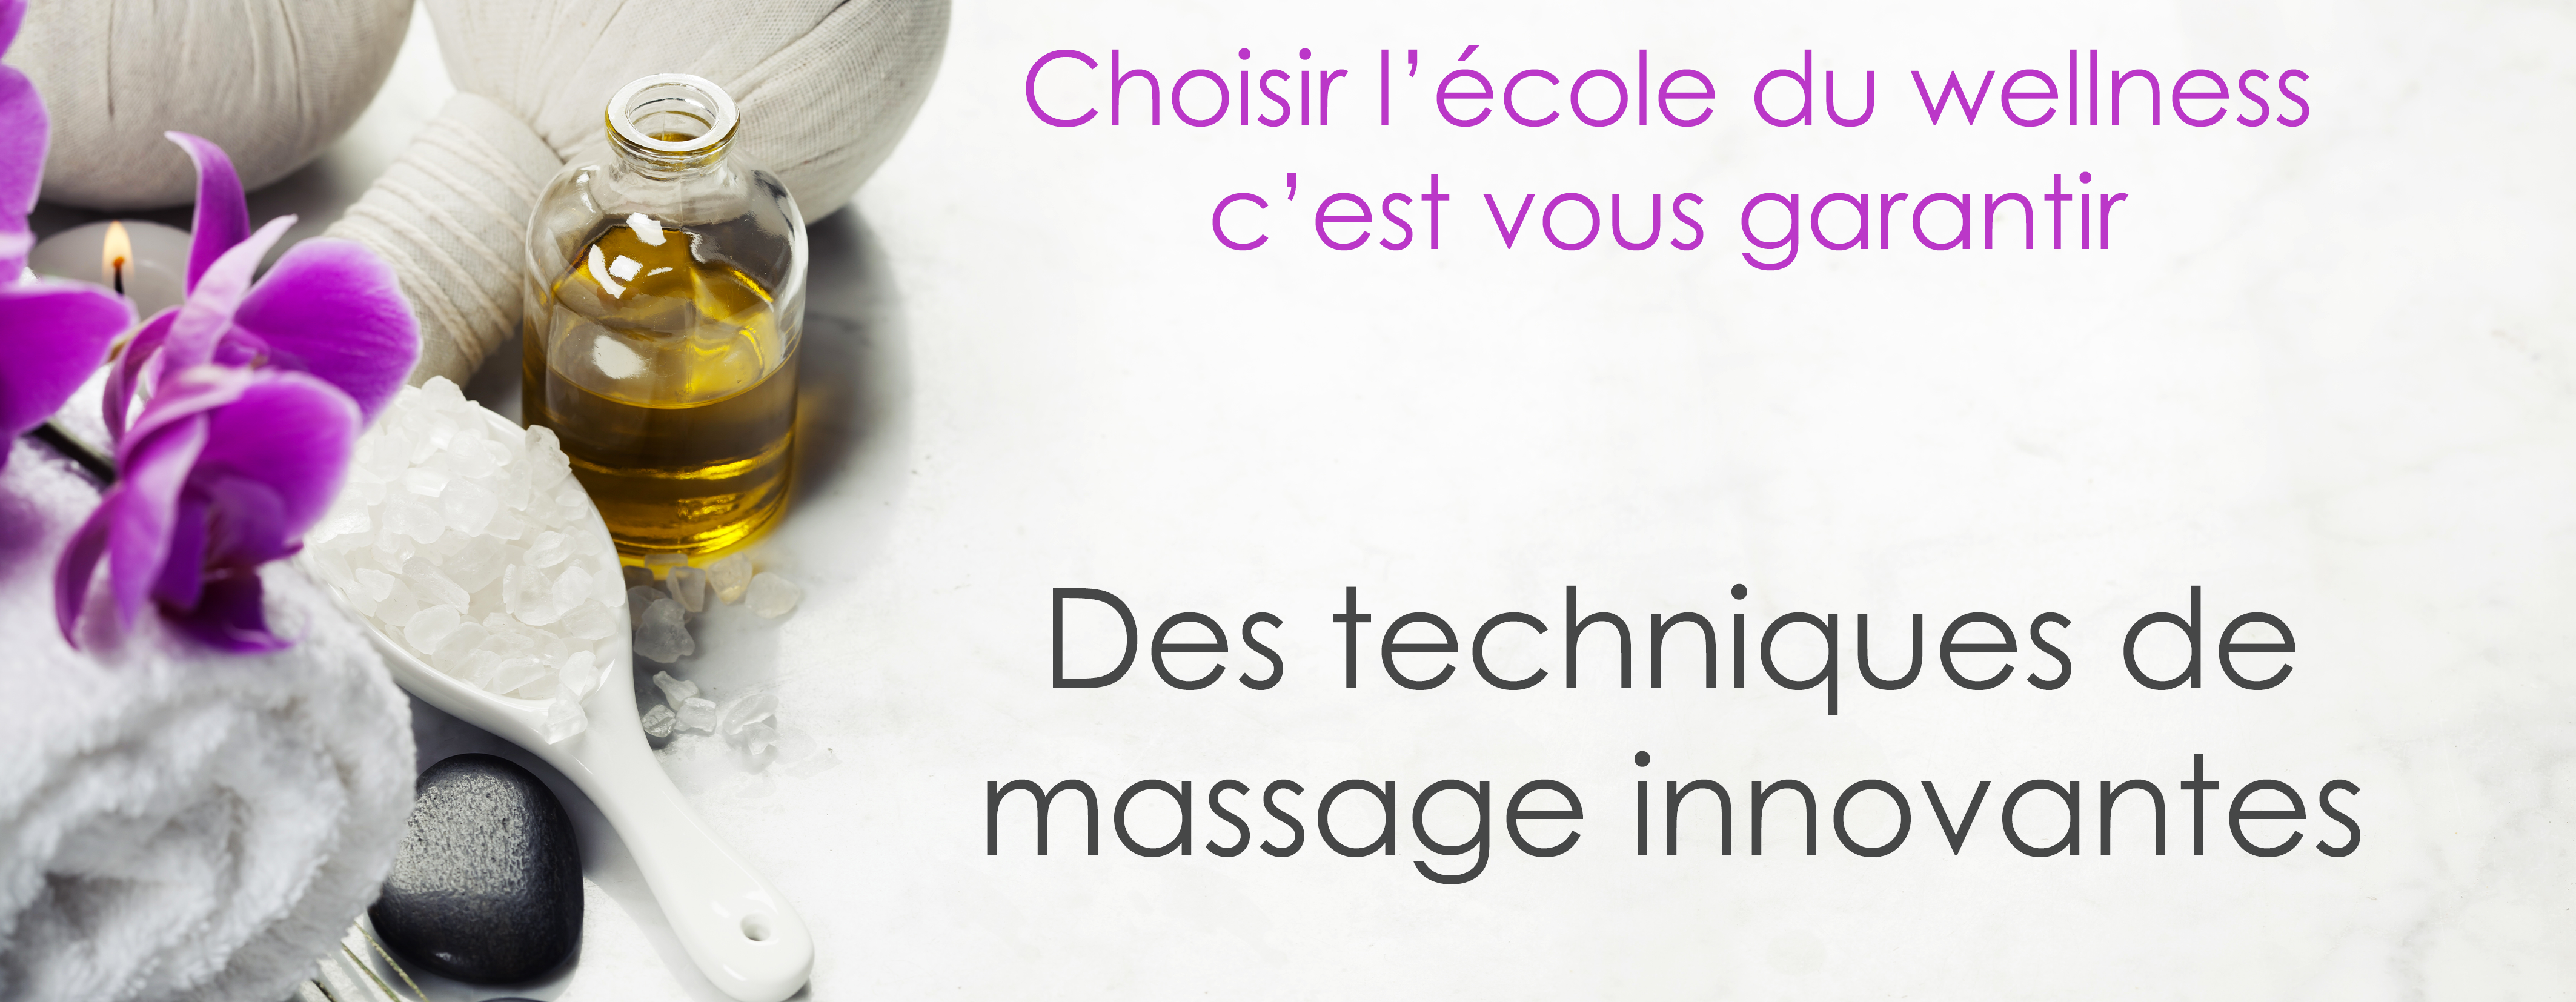 formation distance massage 11.2 Ecole du Wellness